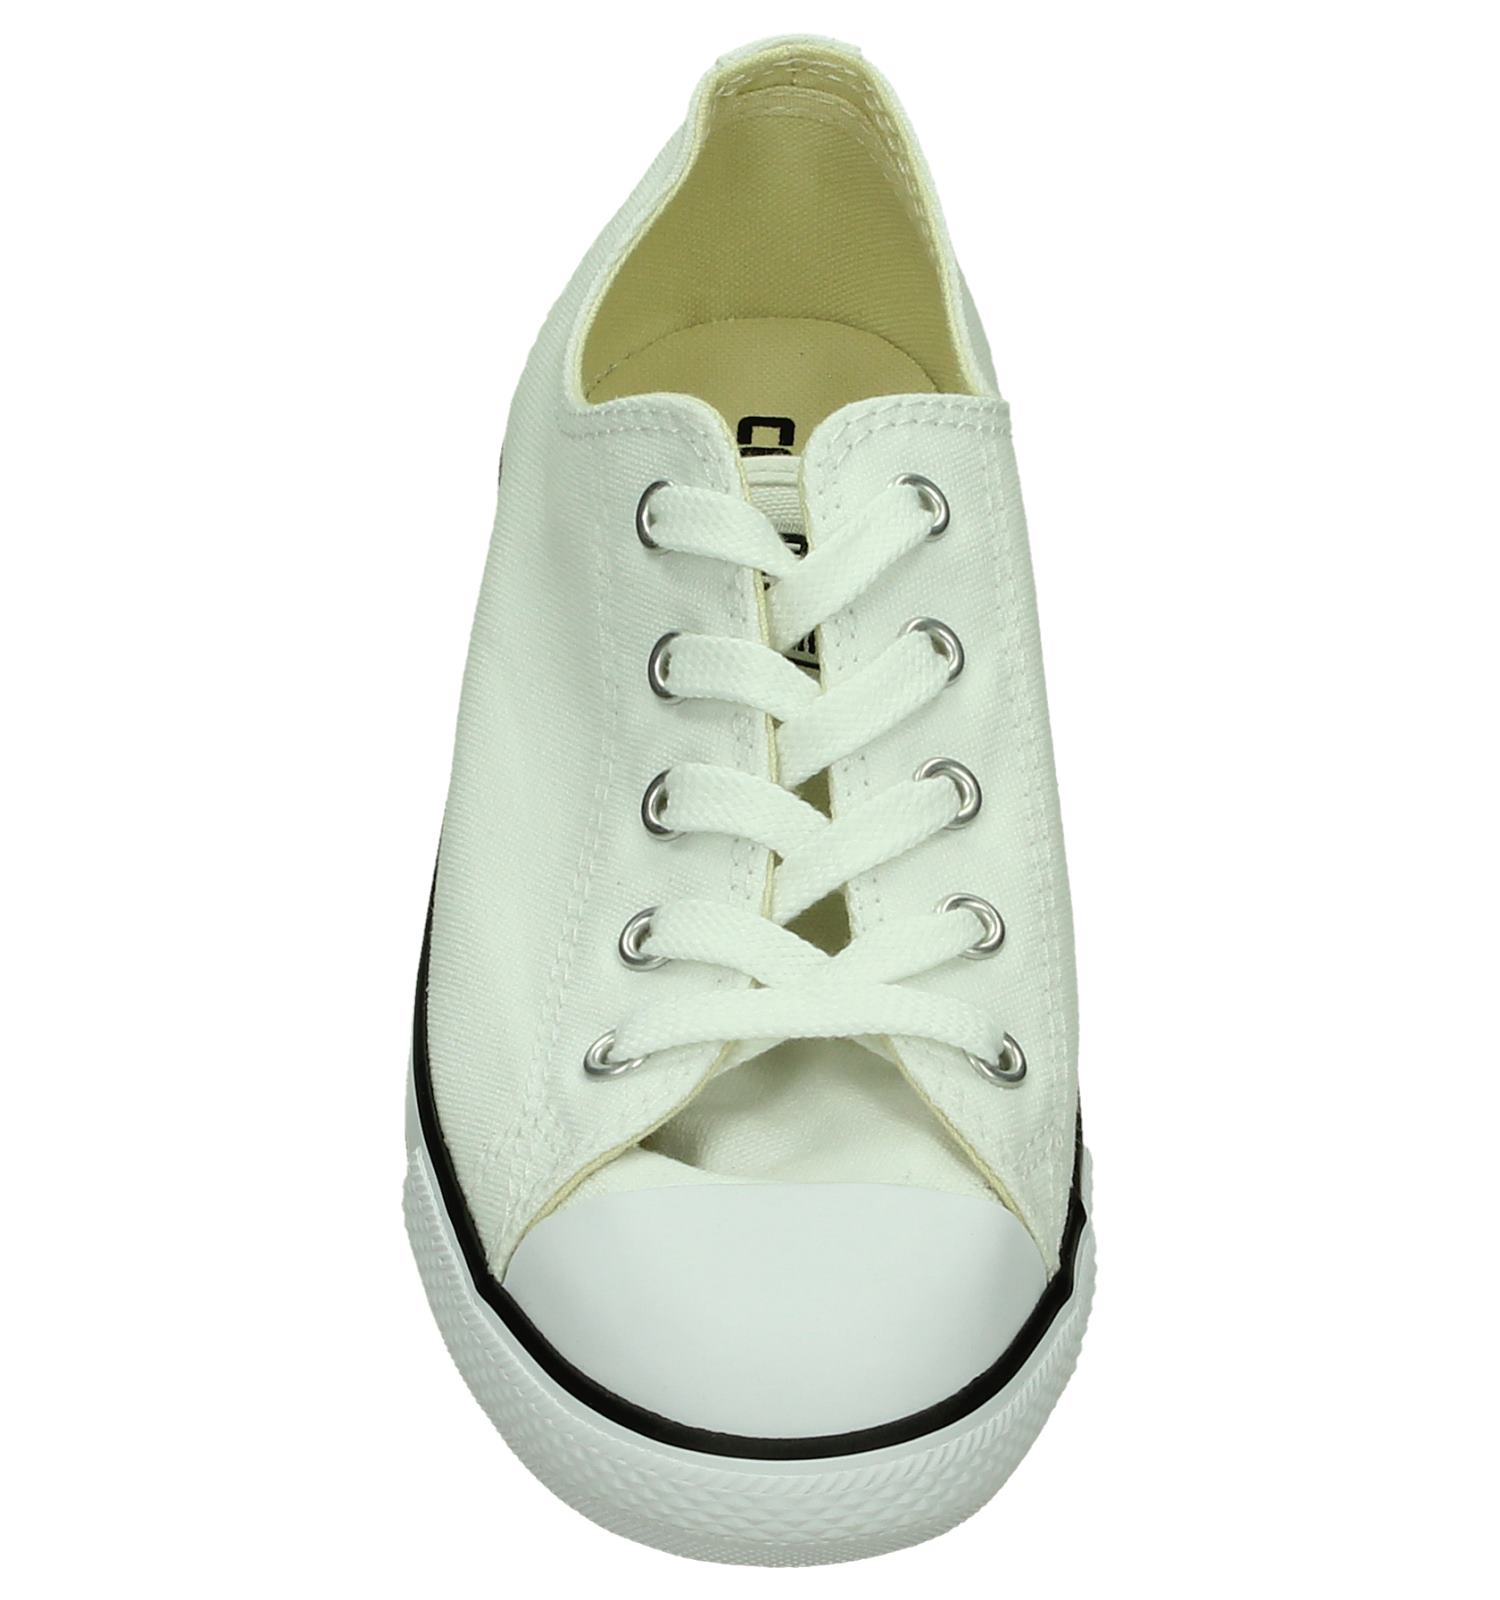 Converse Taylor All Star WitTorfs Dainty be Chuck Sneakers uOPXTkwiZl